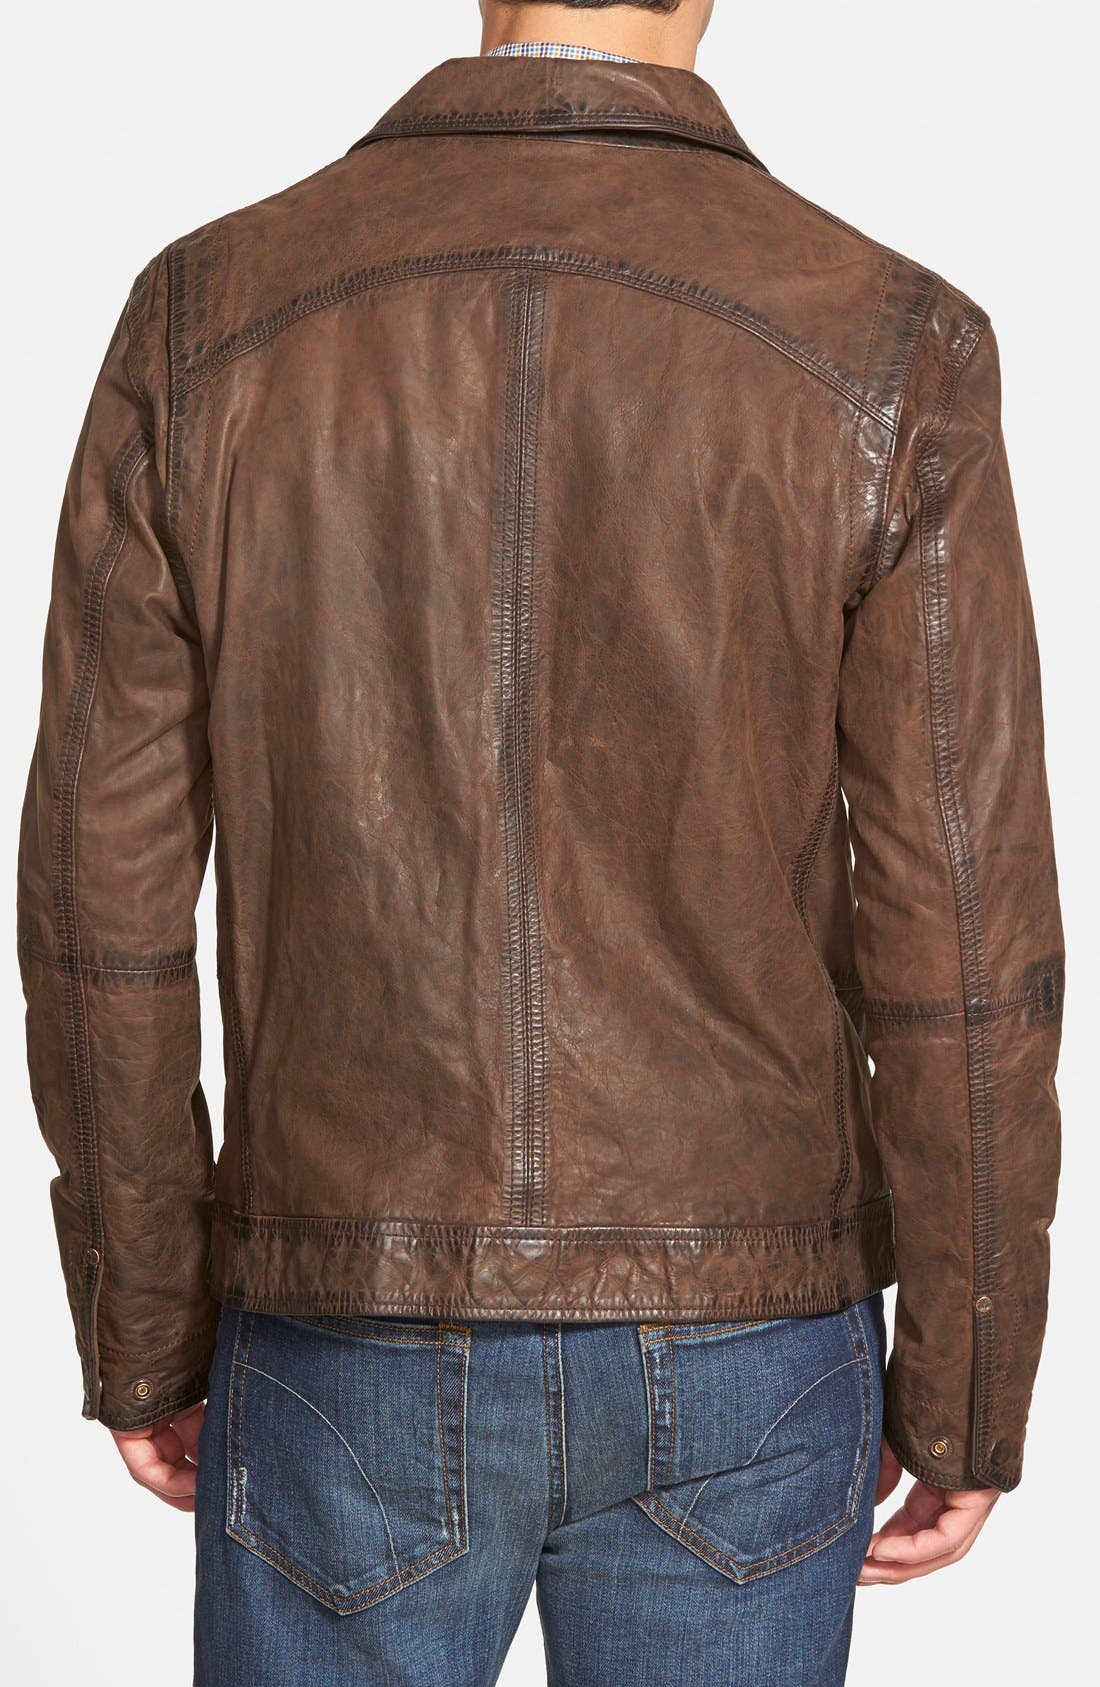 'Tenon' Leather Jacket,                             Alternate thumbnail 2, color,                             Cocoa